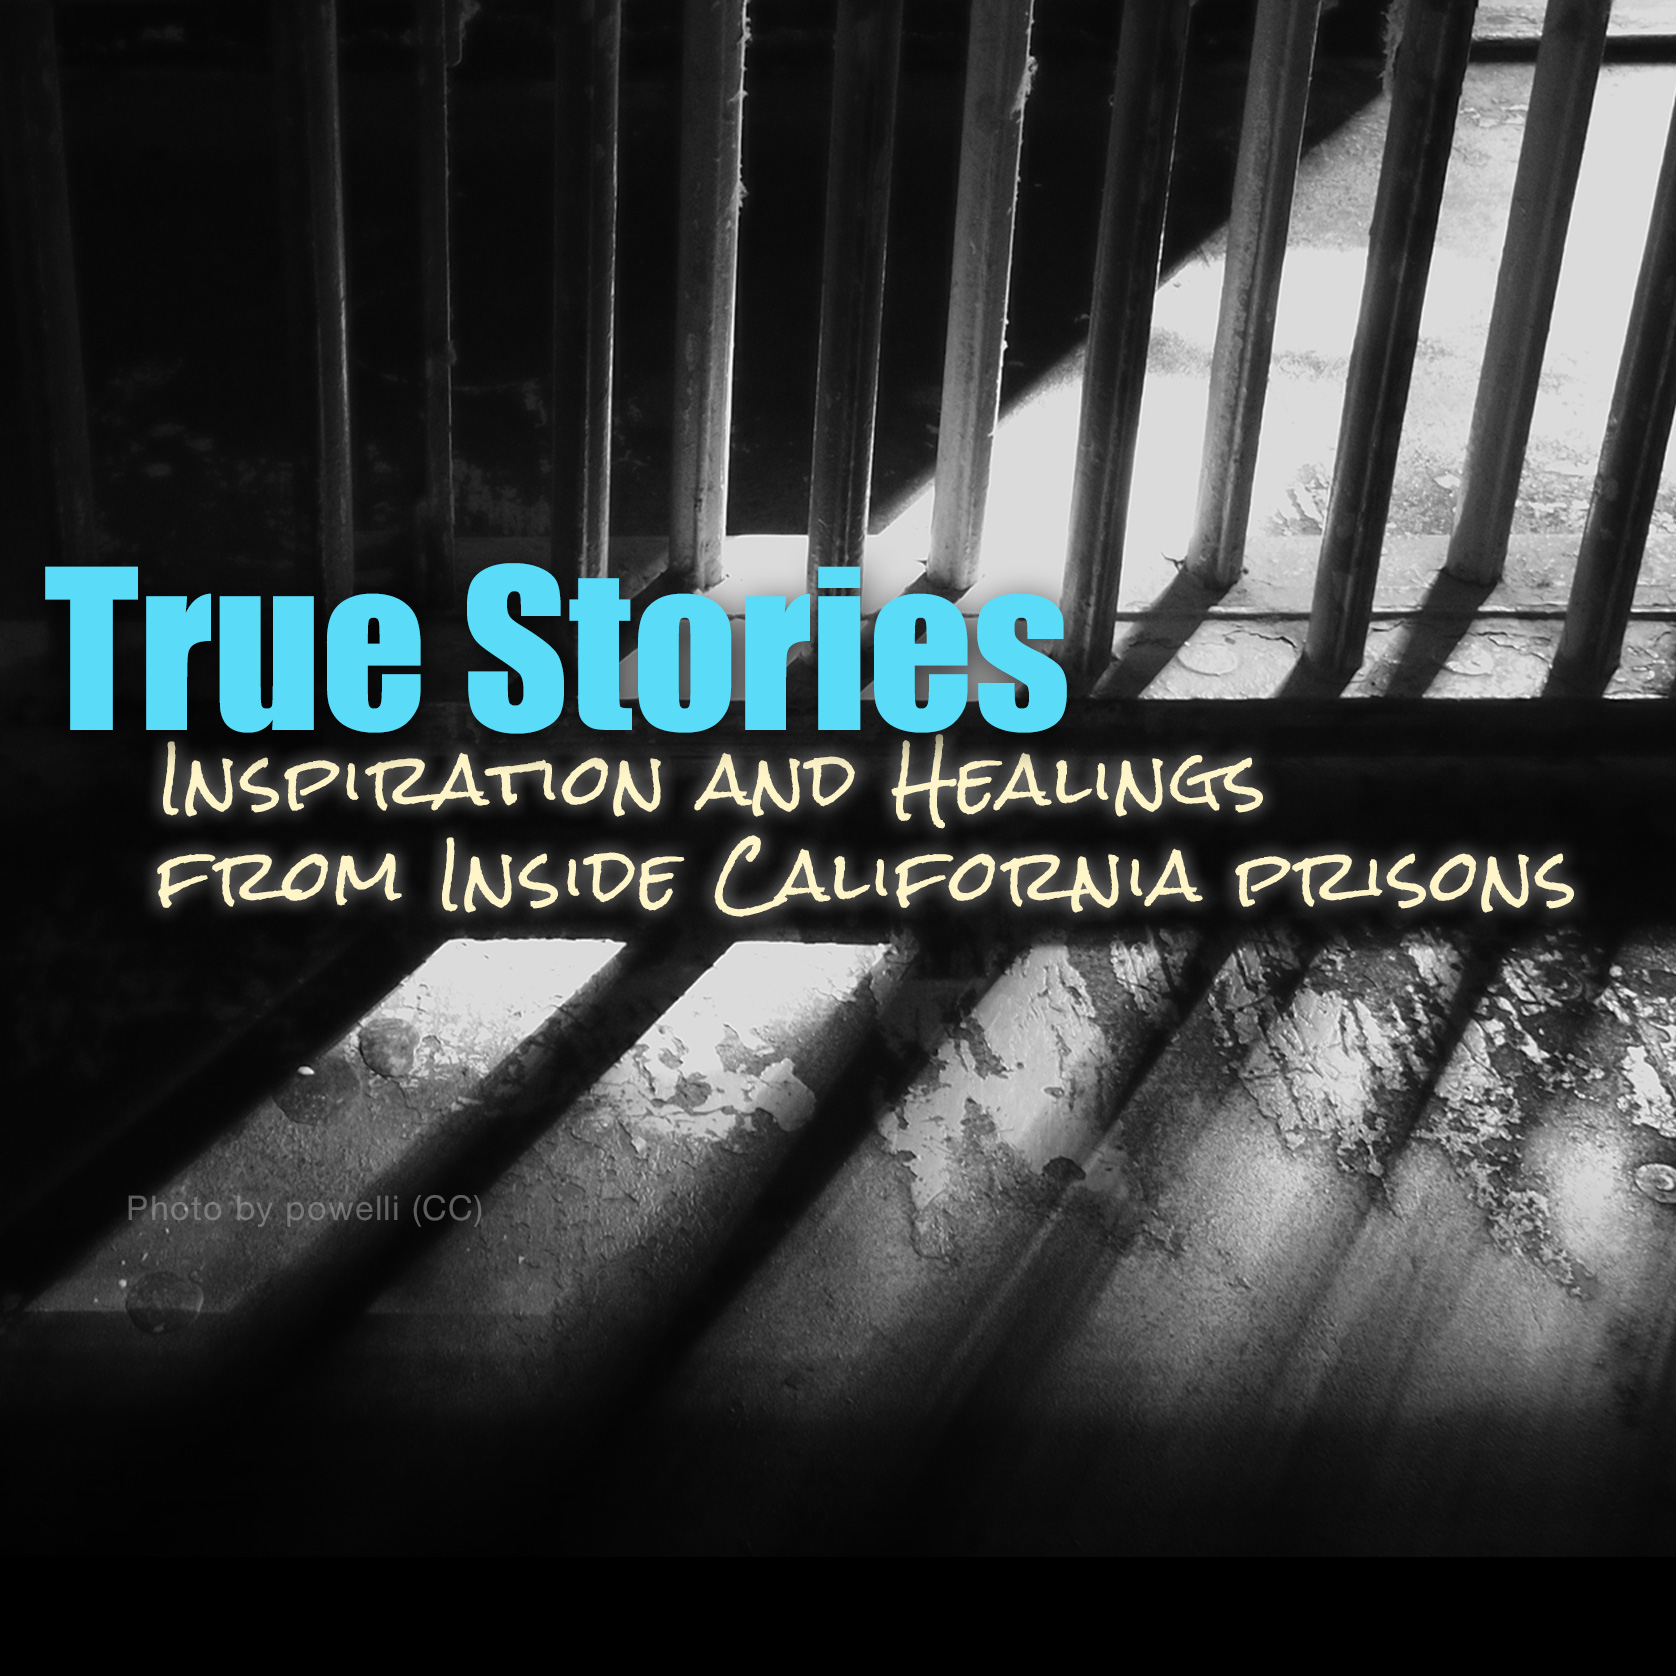 True Stories - Inspiration and Healings from Inside California Prisons